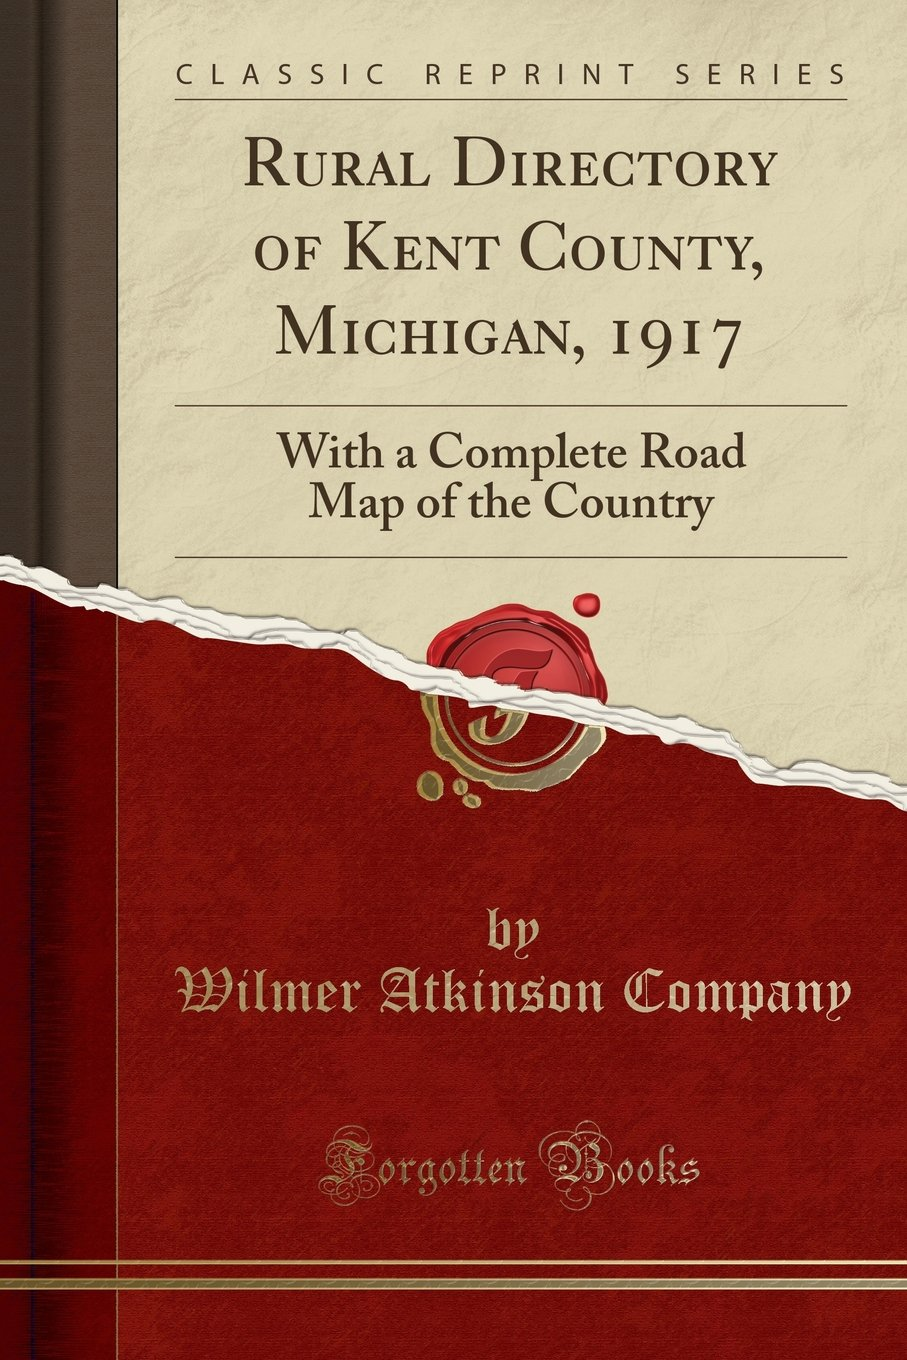 Rural Directory of Kent County, Michigan, 1917: With a Complete Road on st. joseph county michigan road map, wexford county michigan road map, osceola county michigan road map, benzie county michigan road map, wayne county michigan road map, emmet county michigan road map, luce county michigan road map, kent county mi map, cheboygan county michigan road map, kent county road commission logo, ionia county michigan road map, milford michigan road map, alcona county michigan road map, isabella county michigan road map, barry county mi road map, kalamazoo michigan road map, genesee county michigan road map, st. clair county michigan road map, mecosta county michigan road map, ann arbor michigan road map,